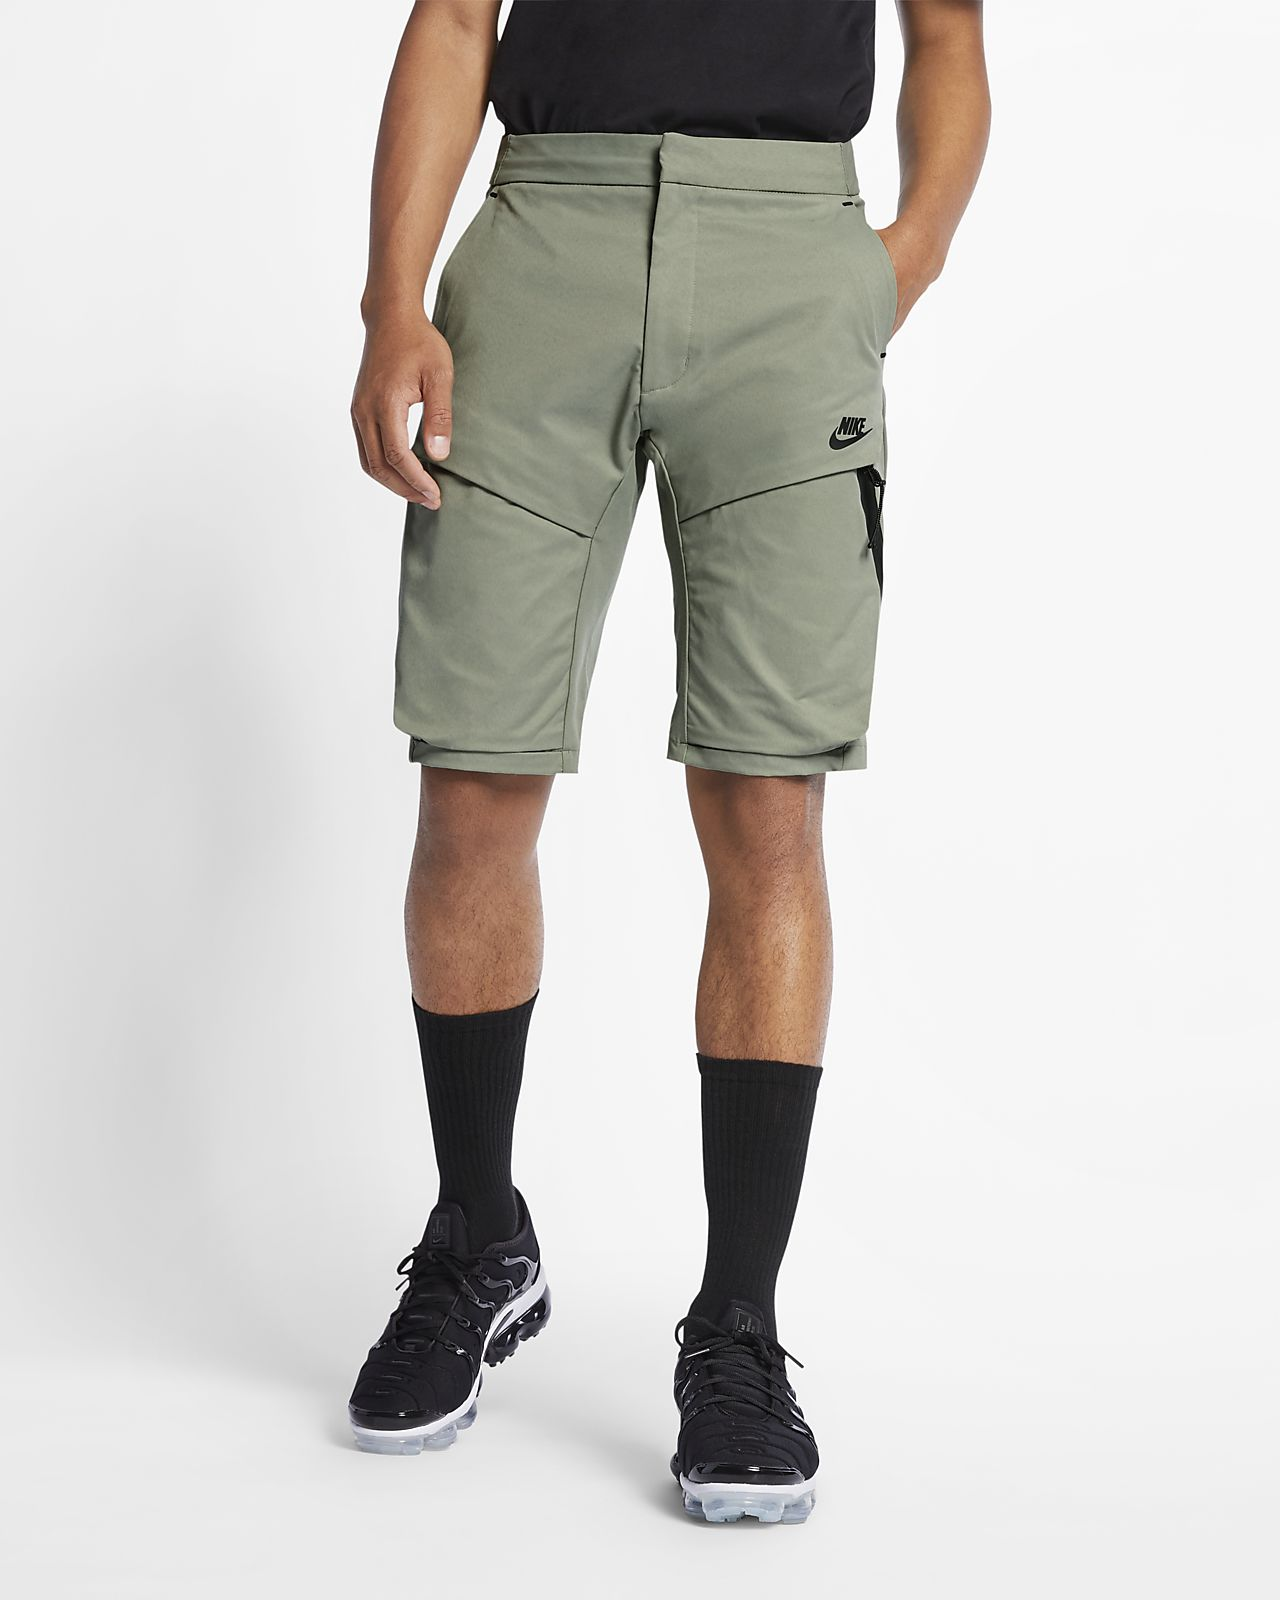 Be Pack Tech Geweven Sportswear Herenshorts Nike z4XqSwE6